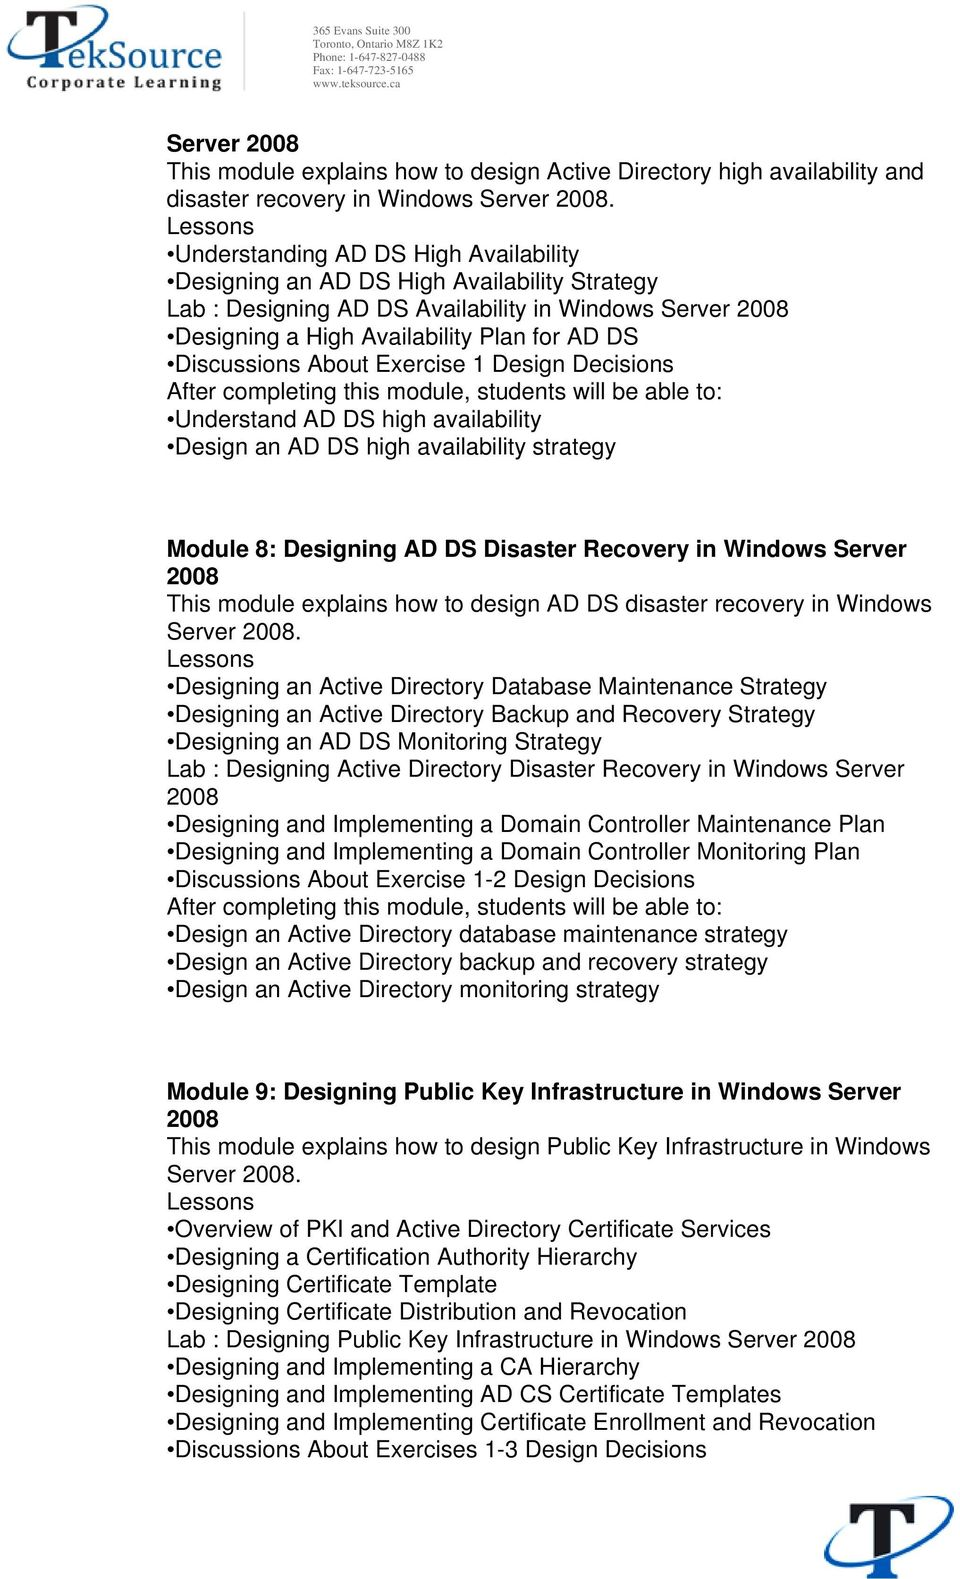 Exercise 1 Design Decisions Understand AD DS high availability Design an AD DS high availability strategy Module 8: Designing AD DS Disaster Recovery in Windows Server This module explains how to